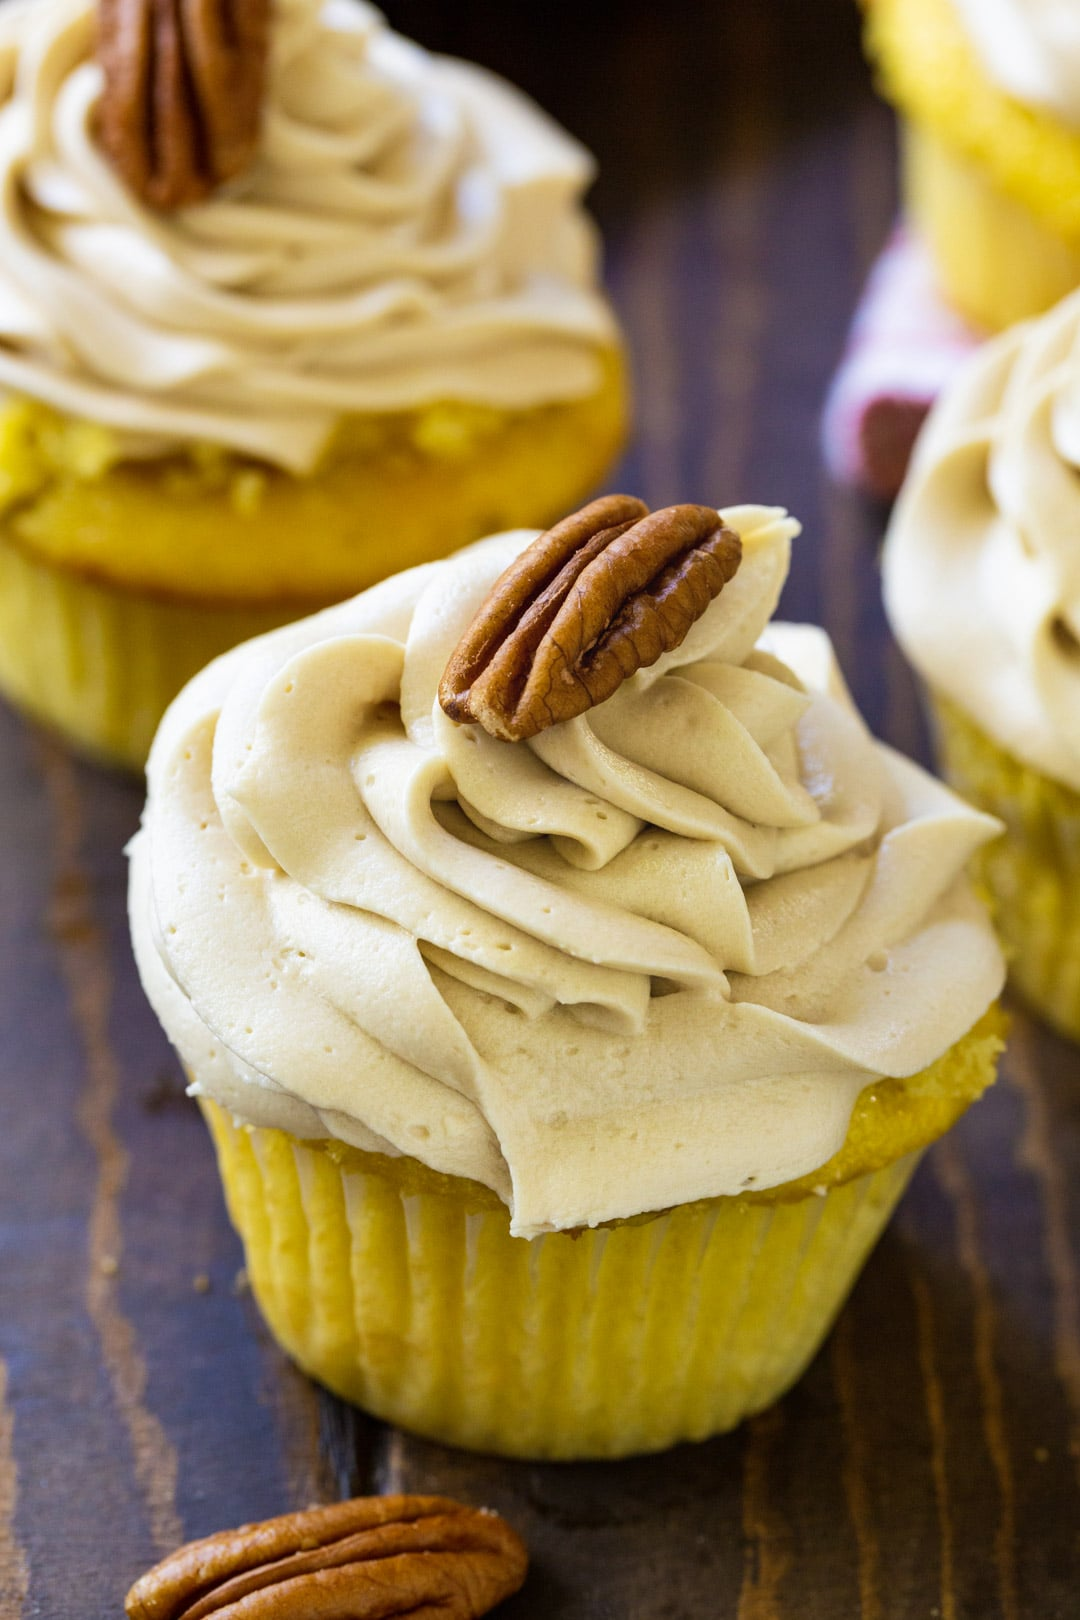 Pecan Pie Cupcakes topped with brown sugar frosting and a pecan.